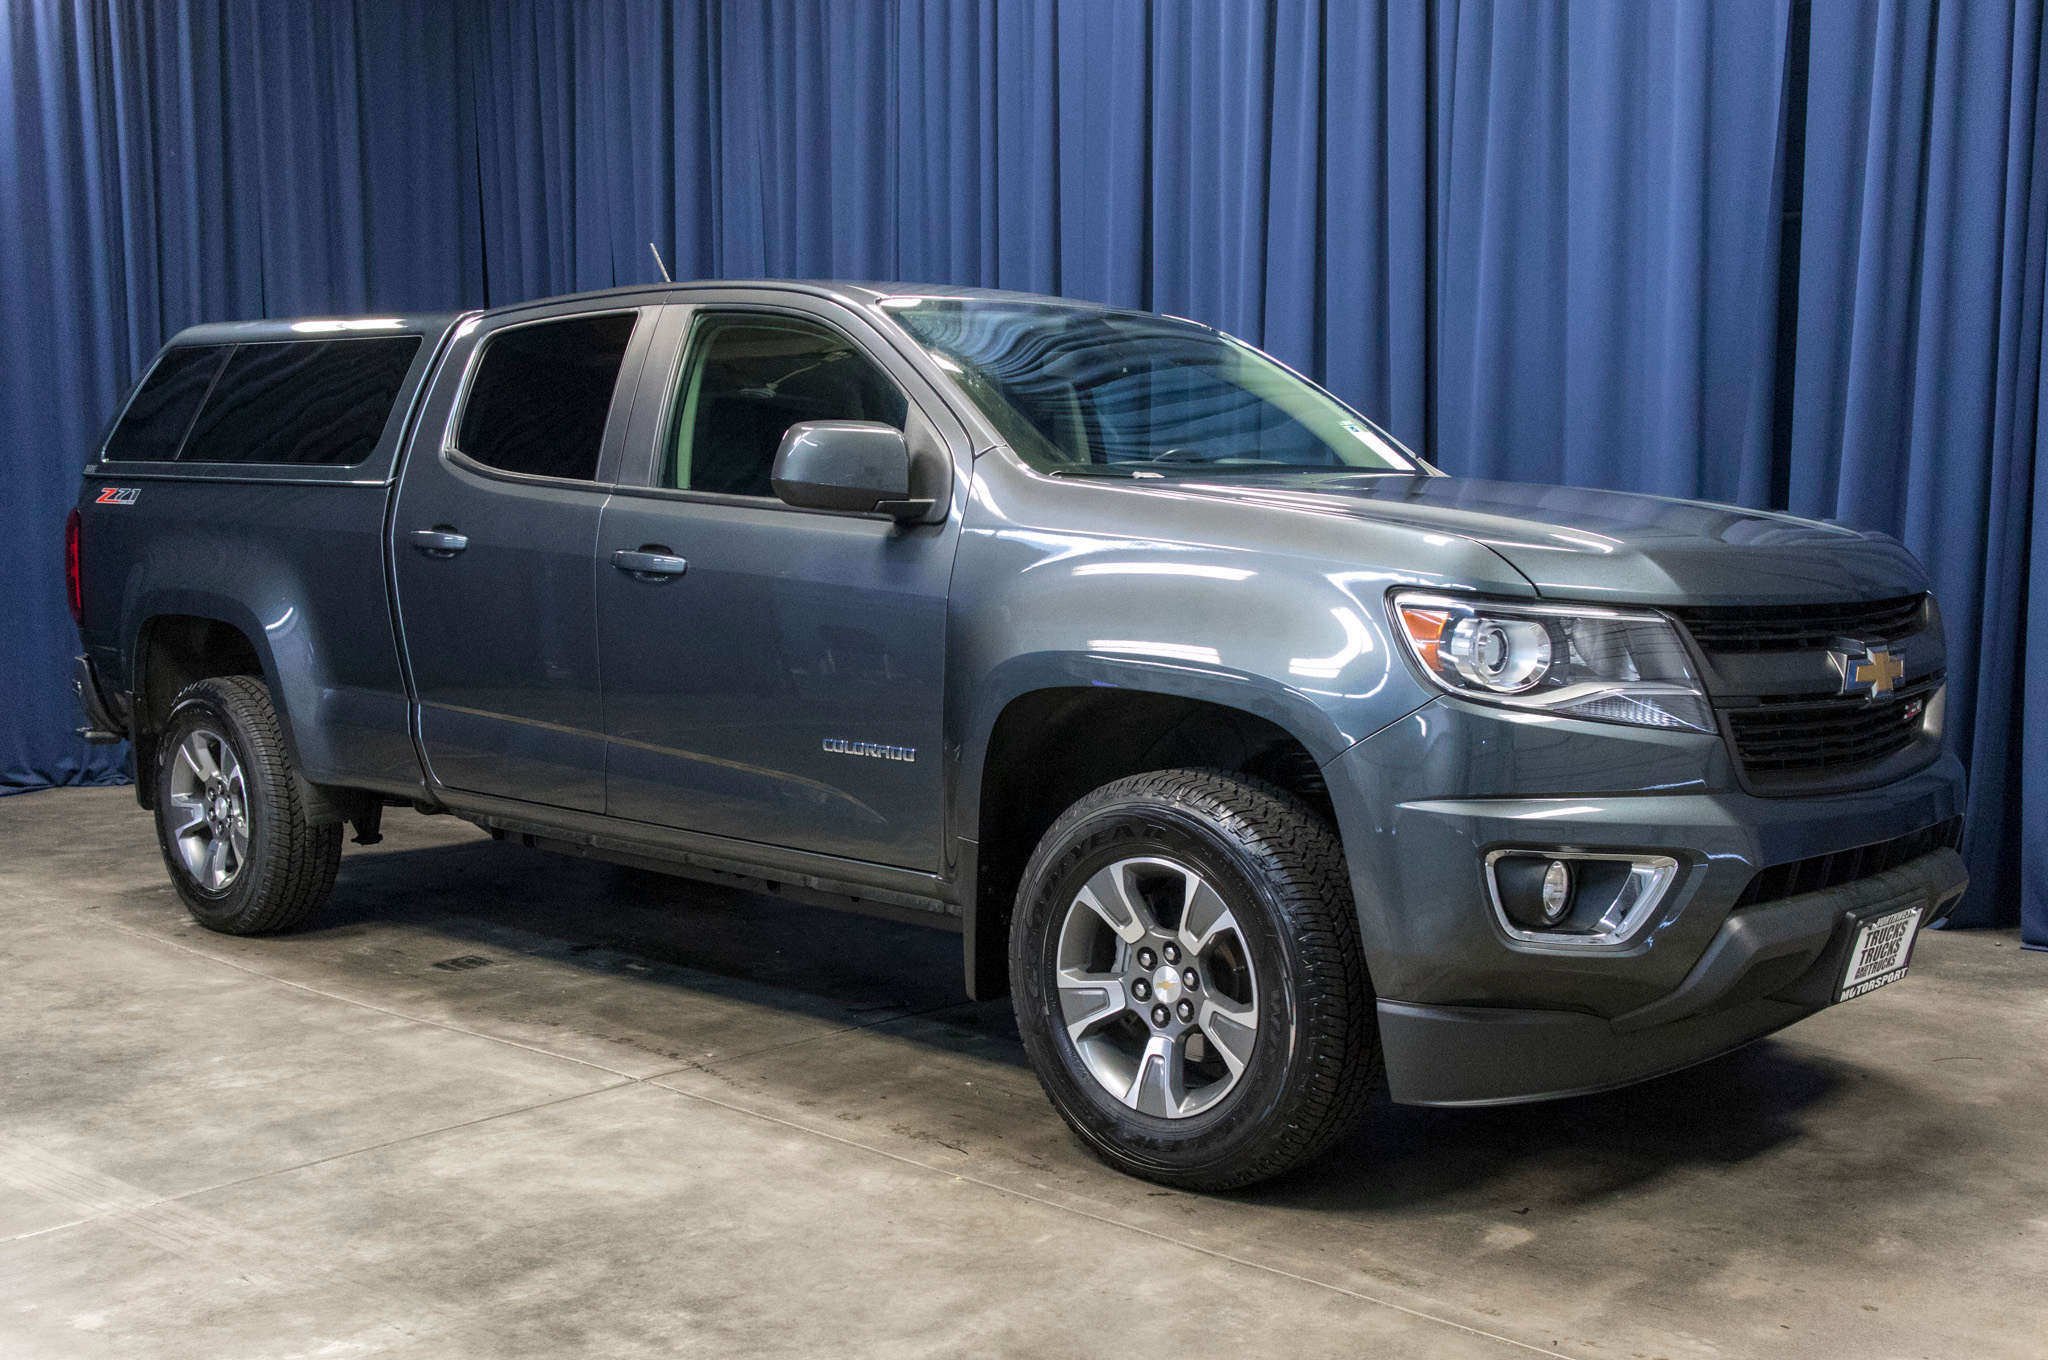 tx sale for freer in photo used vehicle vehicles colorado chevrolet vehiclesearchresults